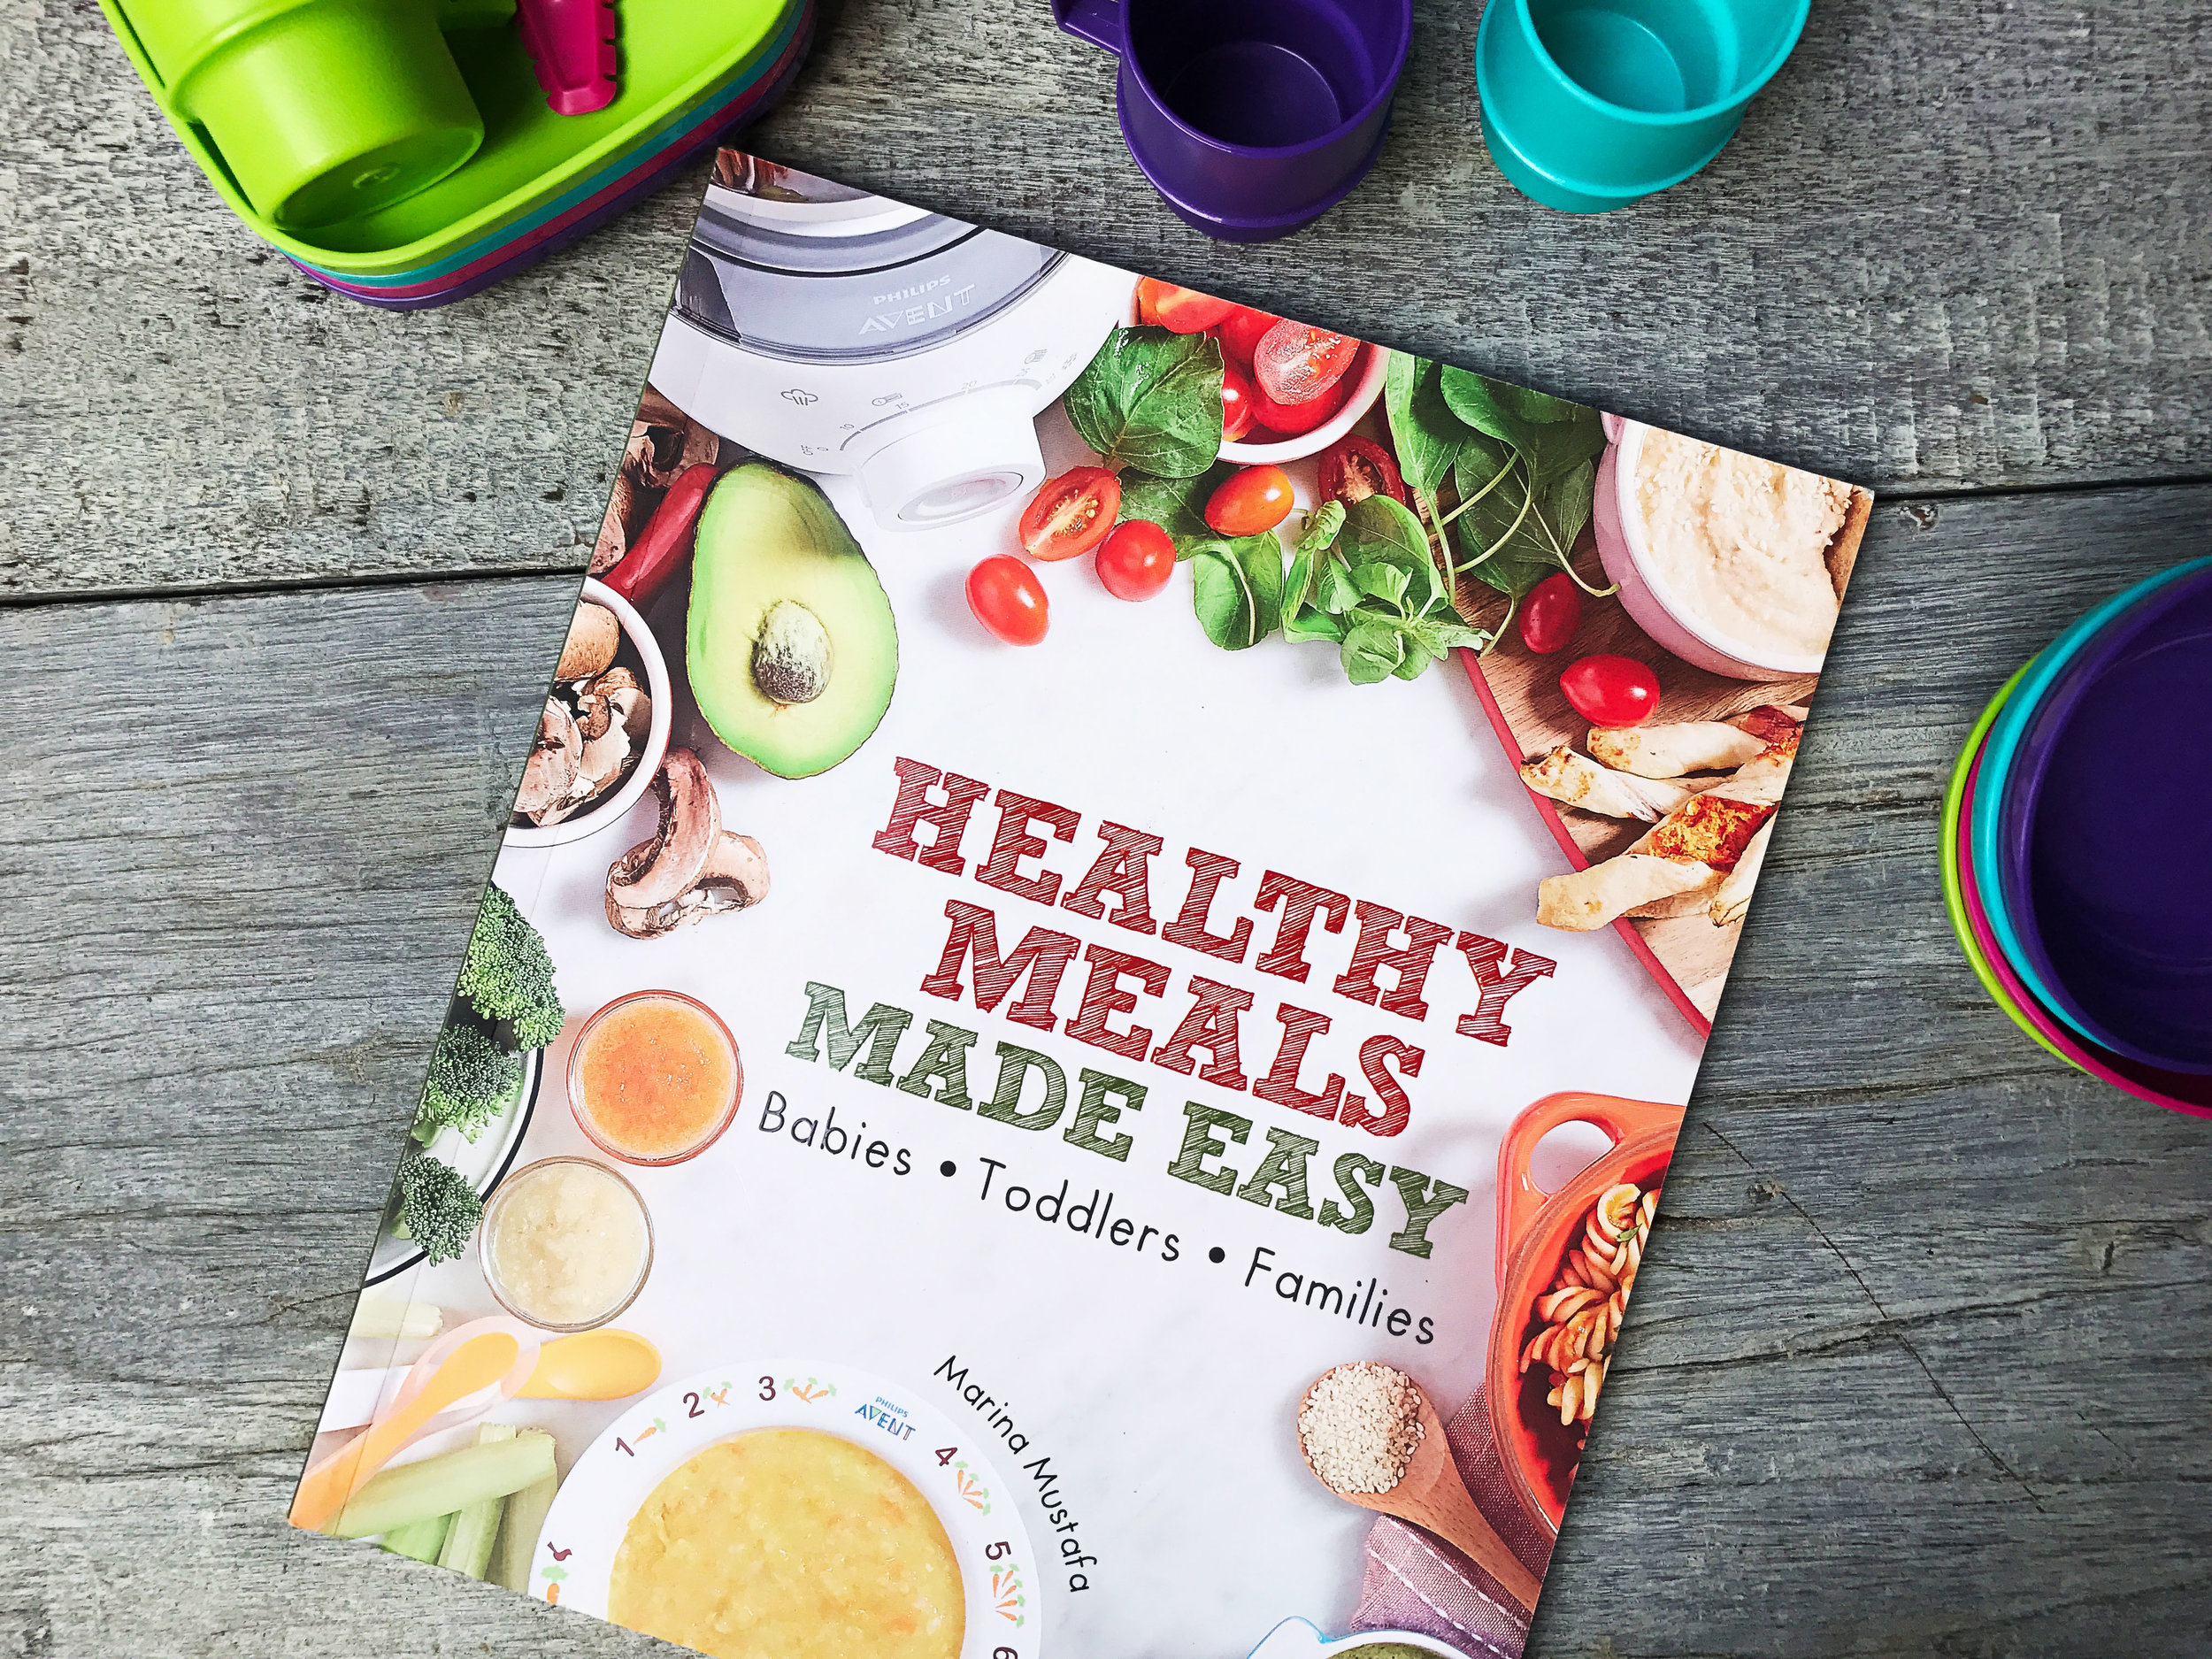 Healthy Meals Made Easy - A comprehensive cookbook, comprising of mouth-watering recipes, a menu-planning guide, myths vs facts of breastfeeding, tips on dealing with colic babies and a nutritional value for every single recipe. Month to month recipes for toddlers from the age of 6 months to 12 months and ideal for the whole family. A collaboration with Philips Avent using the Steamer Blender for each recipe.